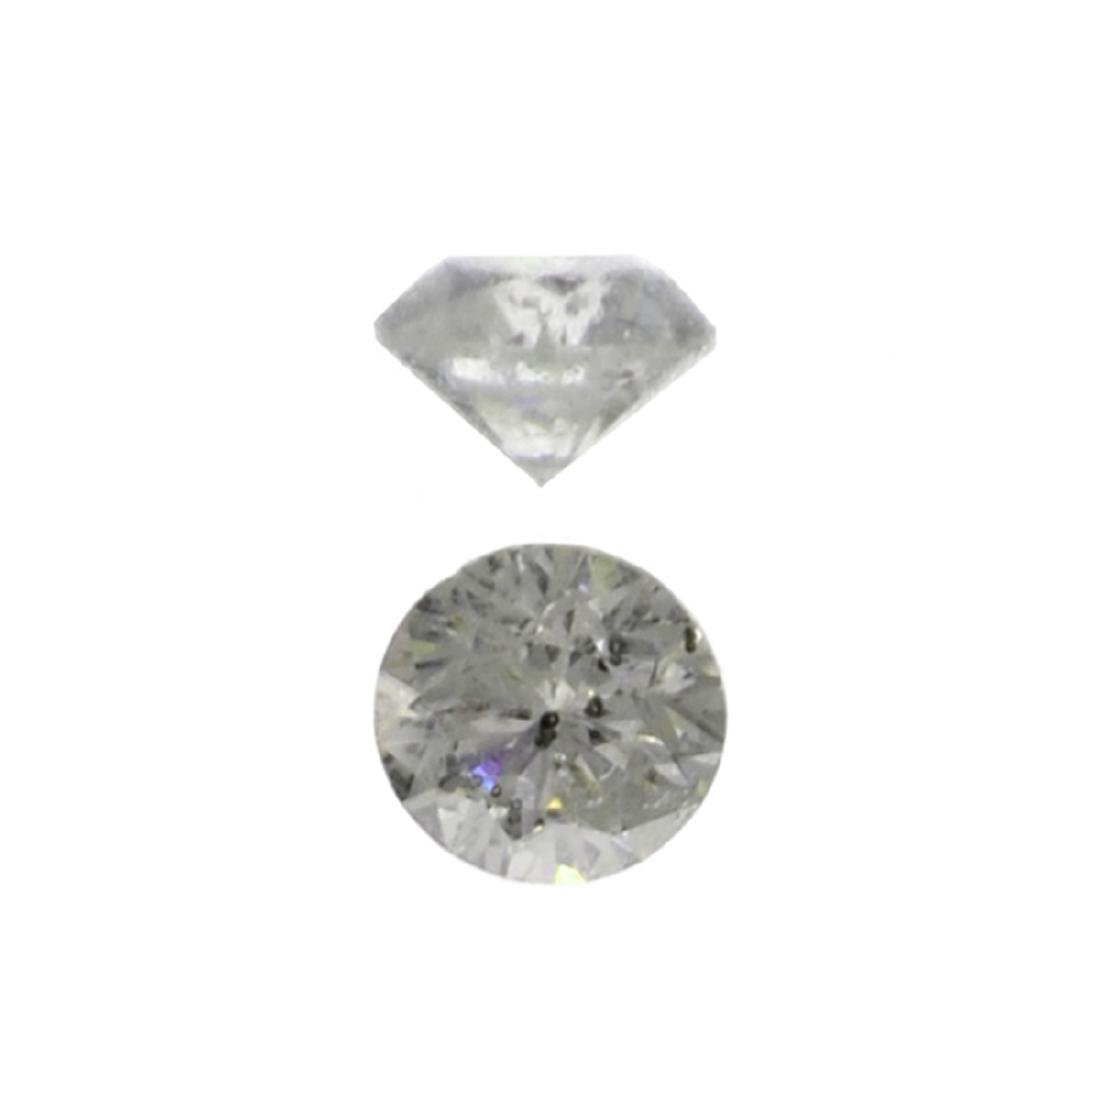 APP: 0.3k Fine Jewelry 0.14CT Round Brilliant Cut